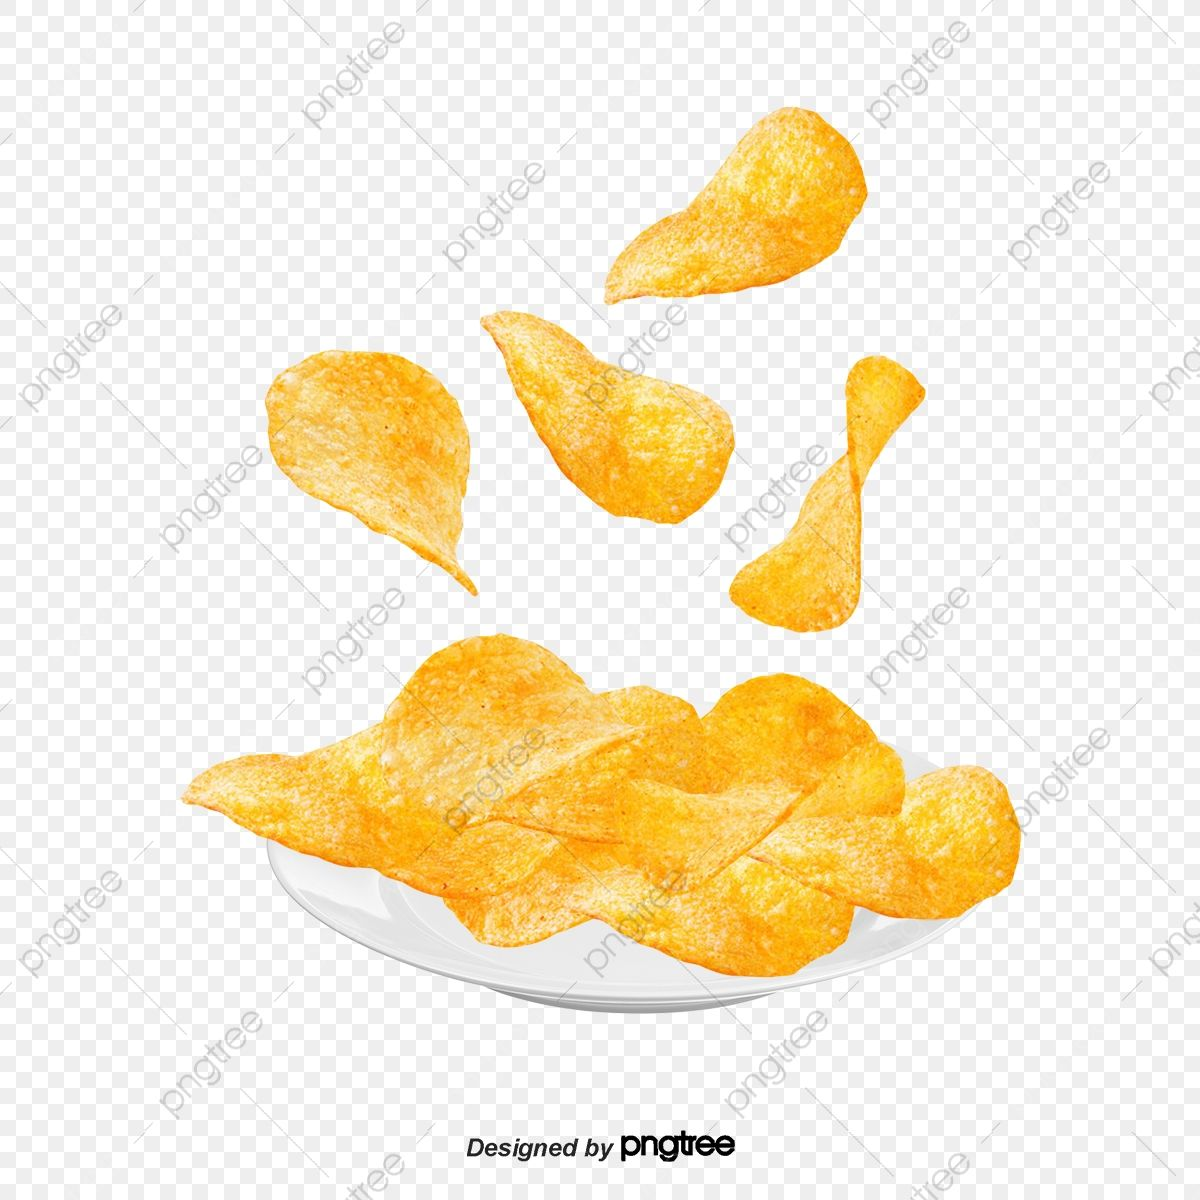 Chips Snacks Chips Clipart Product Kind Popped Png Transparent Clipart Image And Psd File For Free Download Snack Chips Chips Snacks